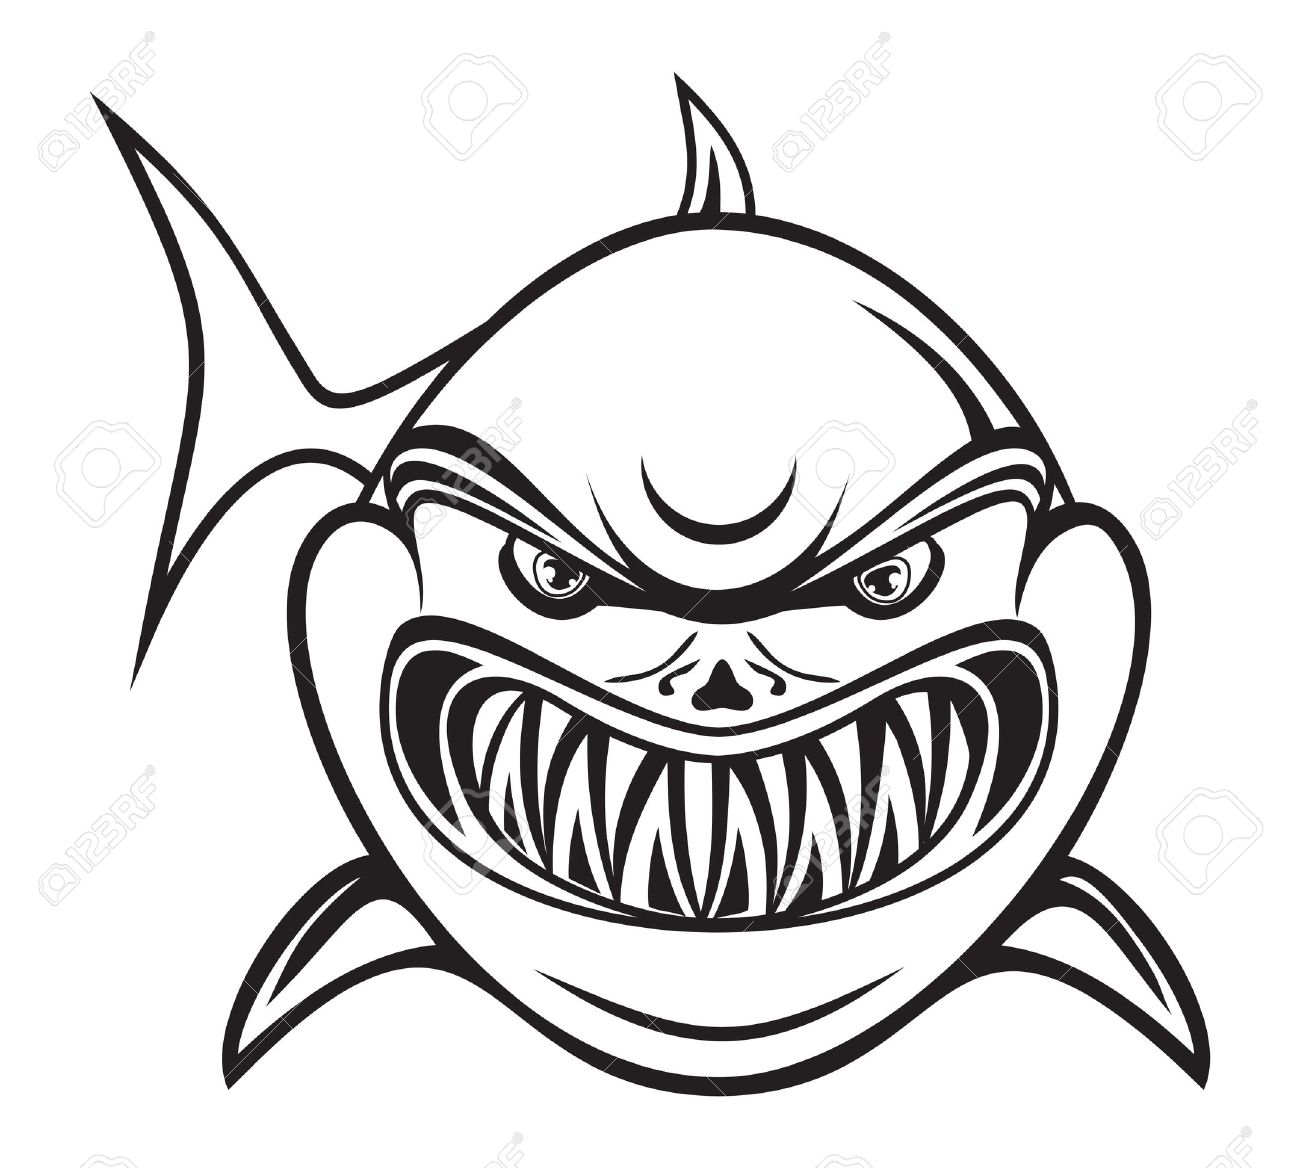 Angry shark black and white Stock Vector - 15770211